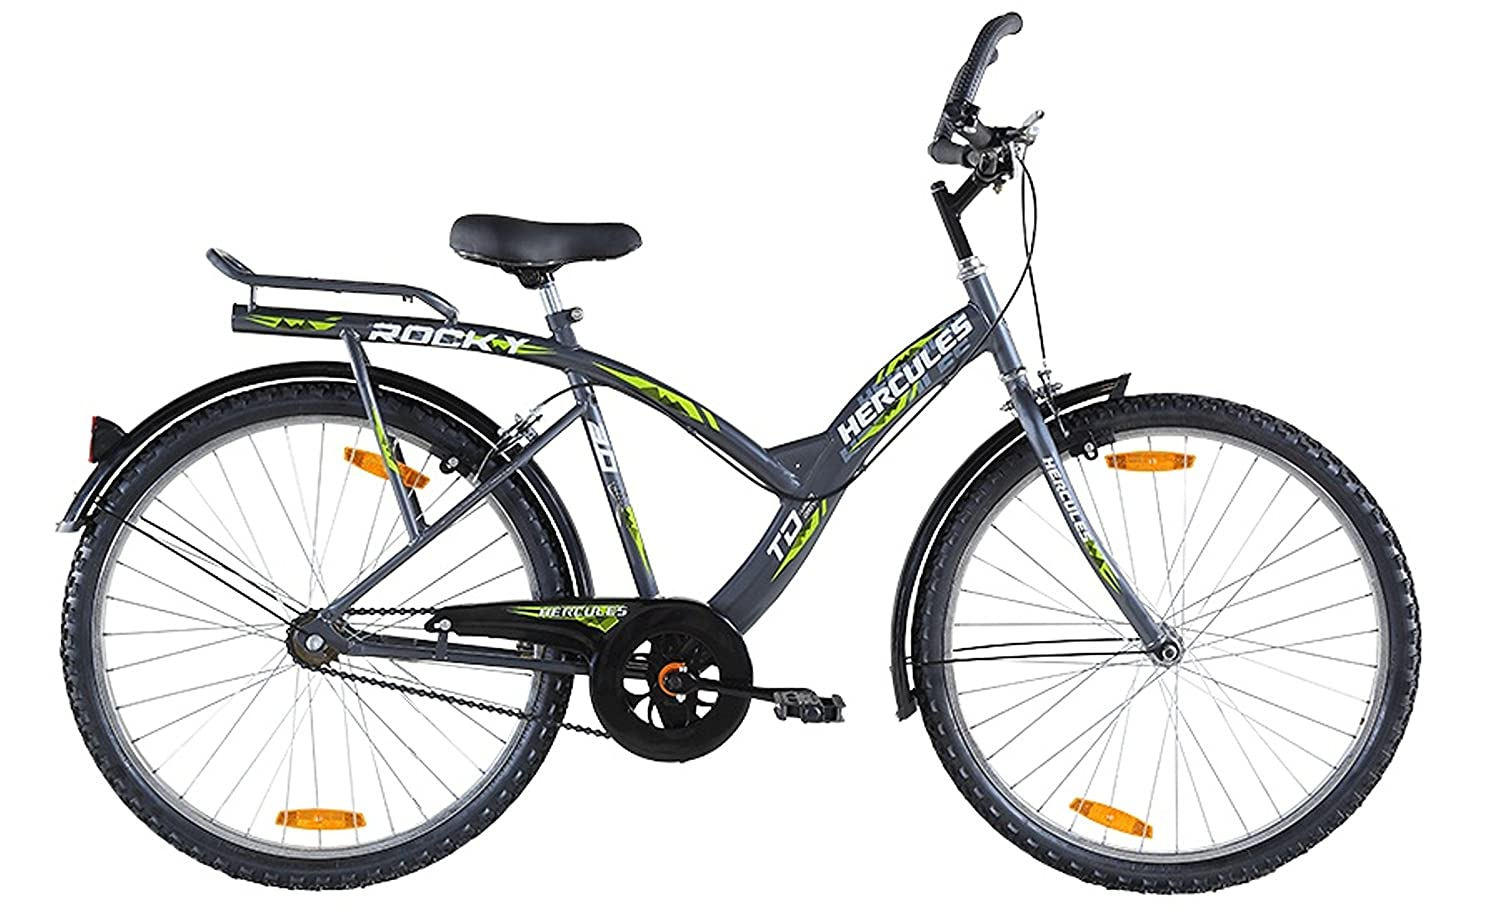 1708a6b711f Buy Hercules MTB Turbodrive Rocky 3.0 26T Bicycle (New Version) Online at  Low Prices in India - Amazon.in